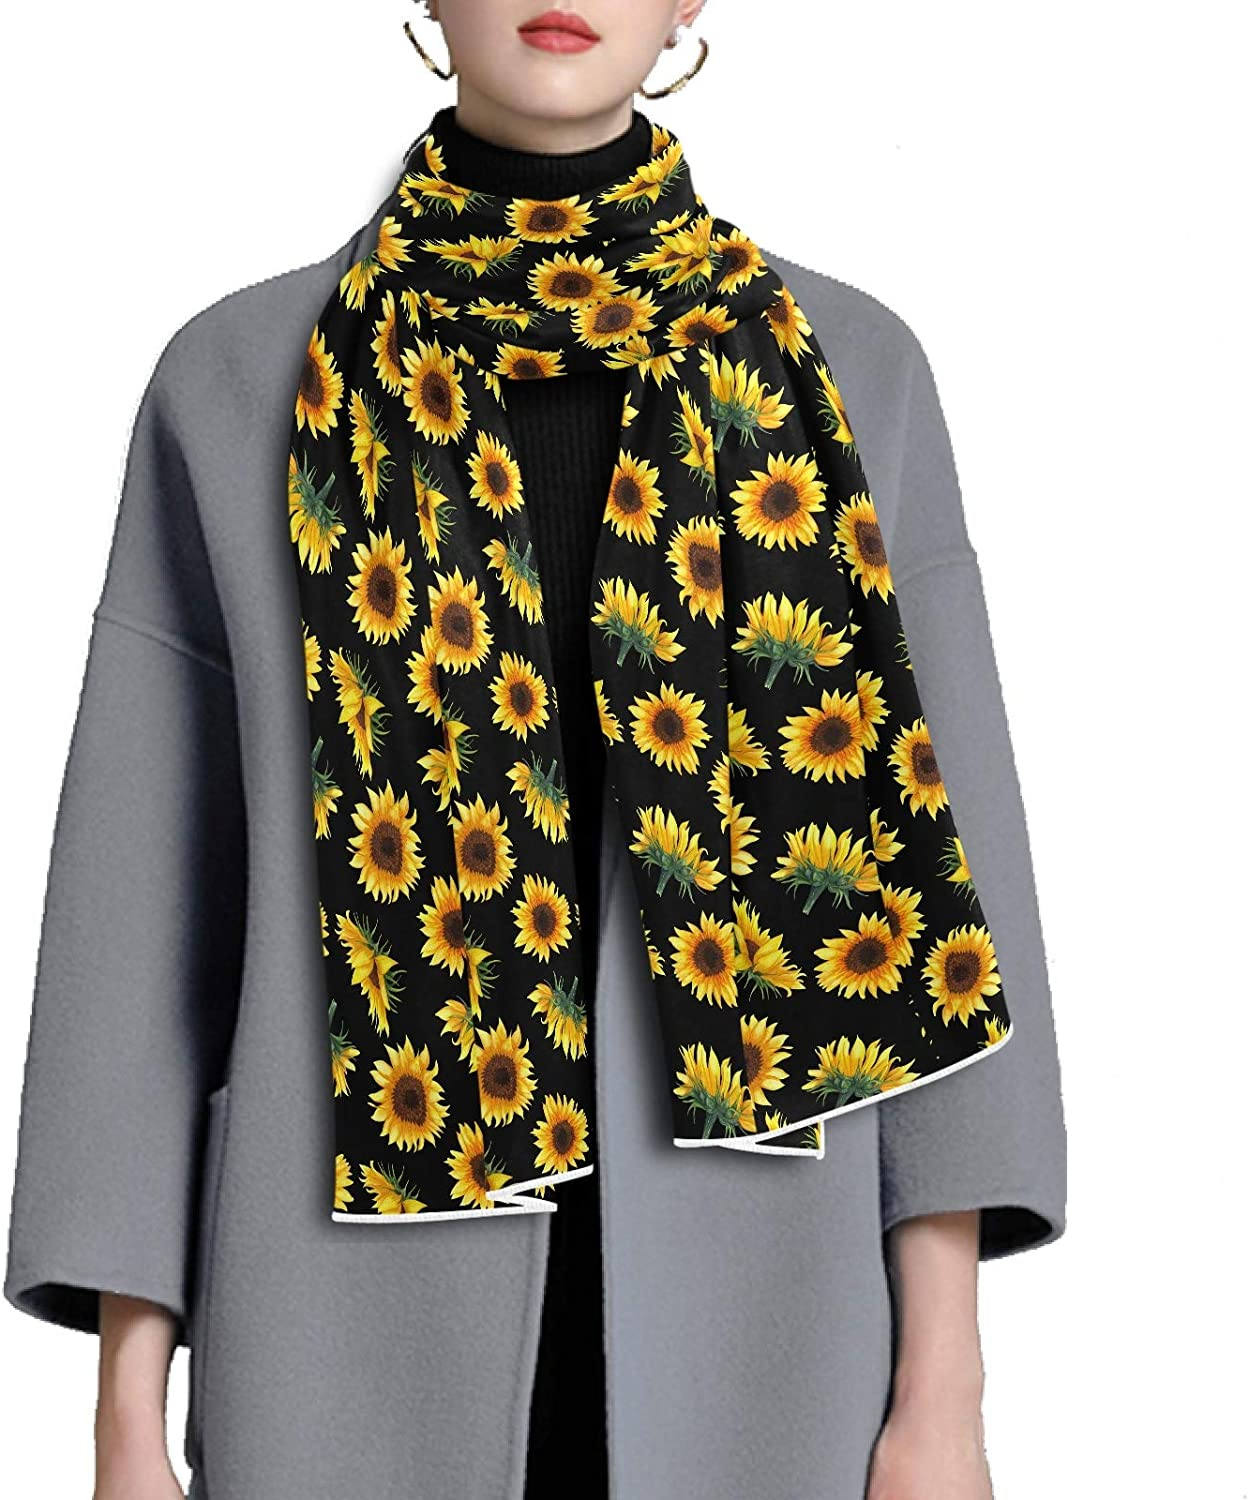 Scarf for Women and Men Sunflowers Black Blanket Shawl Scarf wraps Warm soft Winter Long Scarves Lightweight